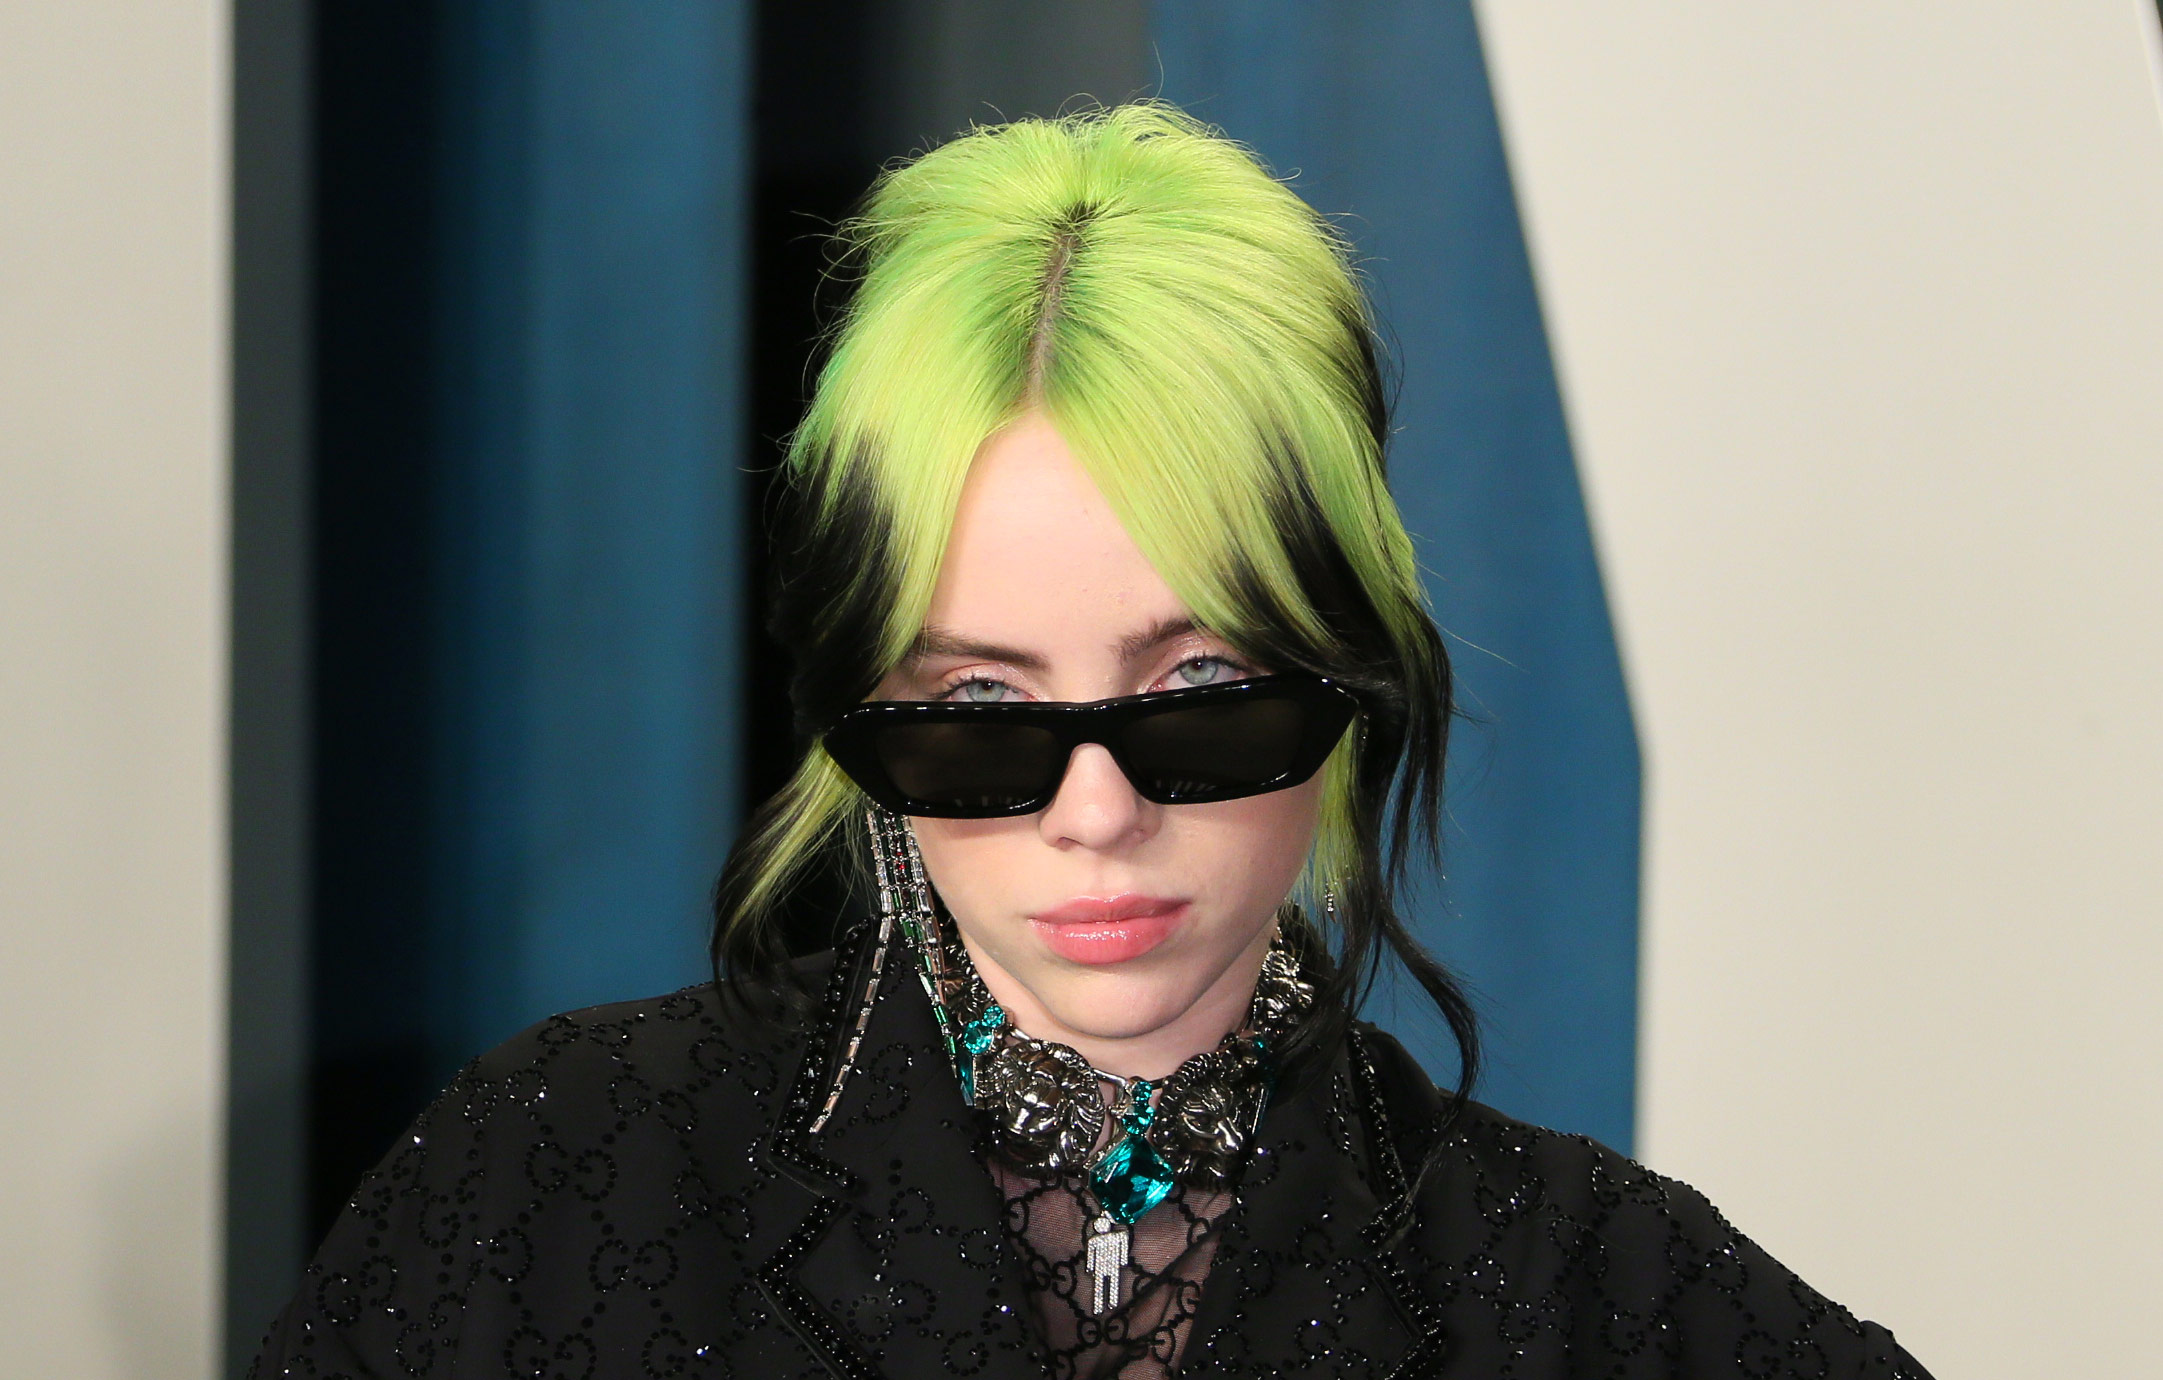 Billie Eilish apologizes after video surfaces of singer mouthing racial slur